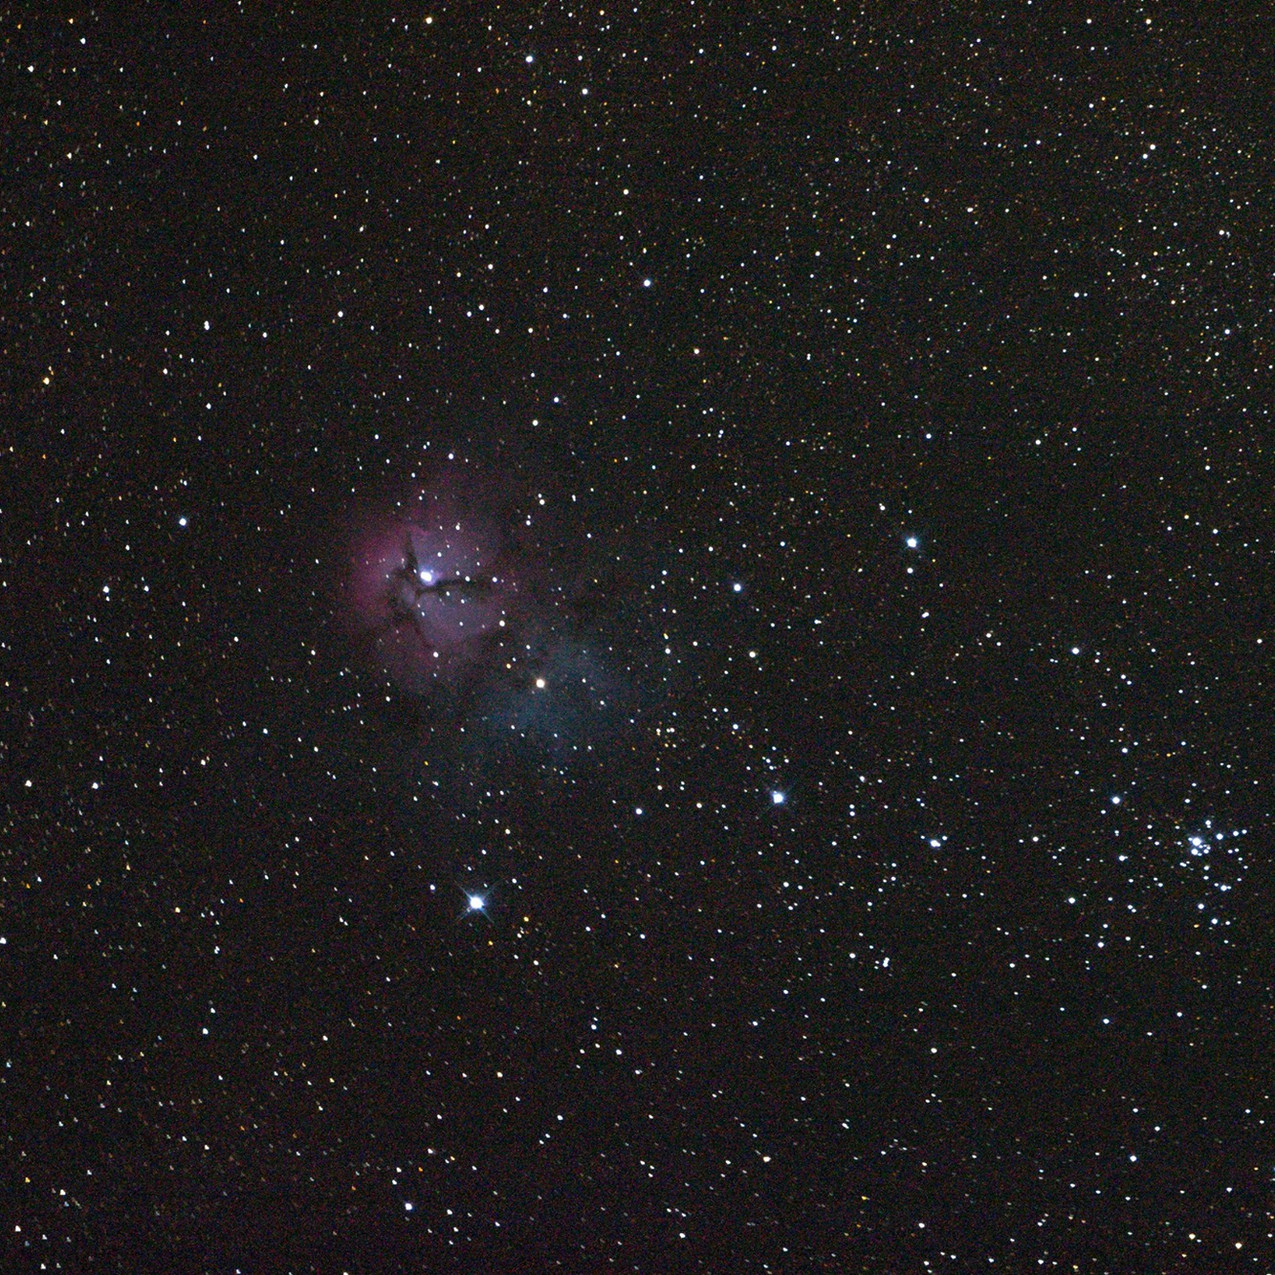 M20 the trifid nebula single shot 3 minutes with an unmodified canon t3i DSLR camera astrophotography